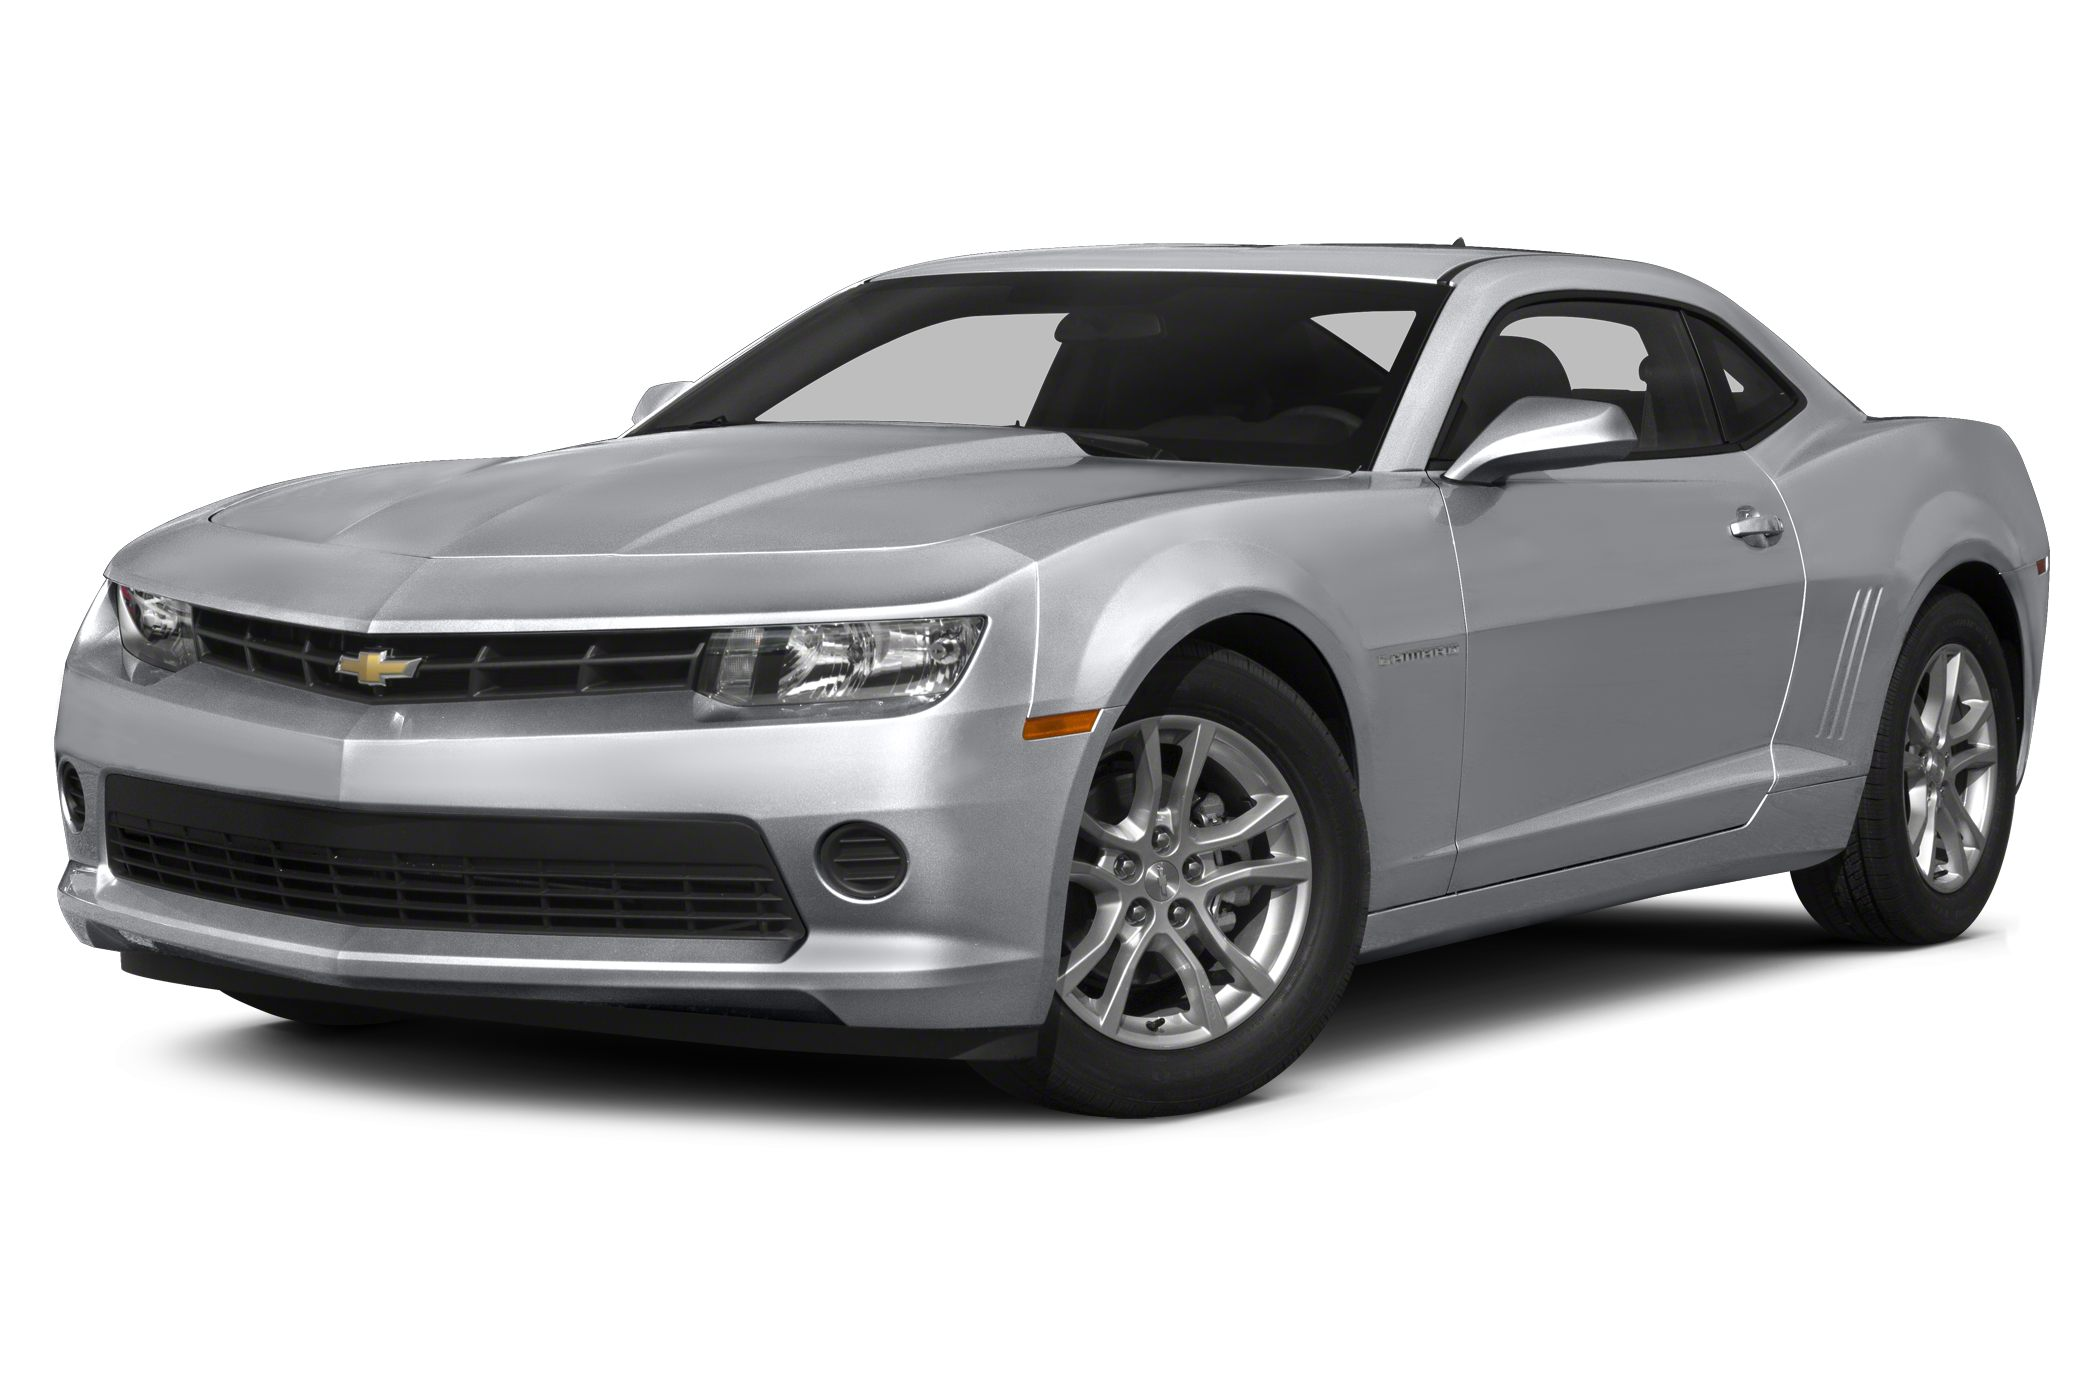 2015 Chevrolet Camaro 1LT Coupe for sale in Memphis for $27,014 with 3 miles.